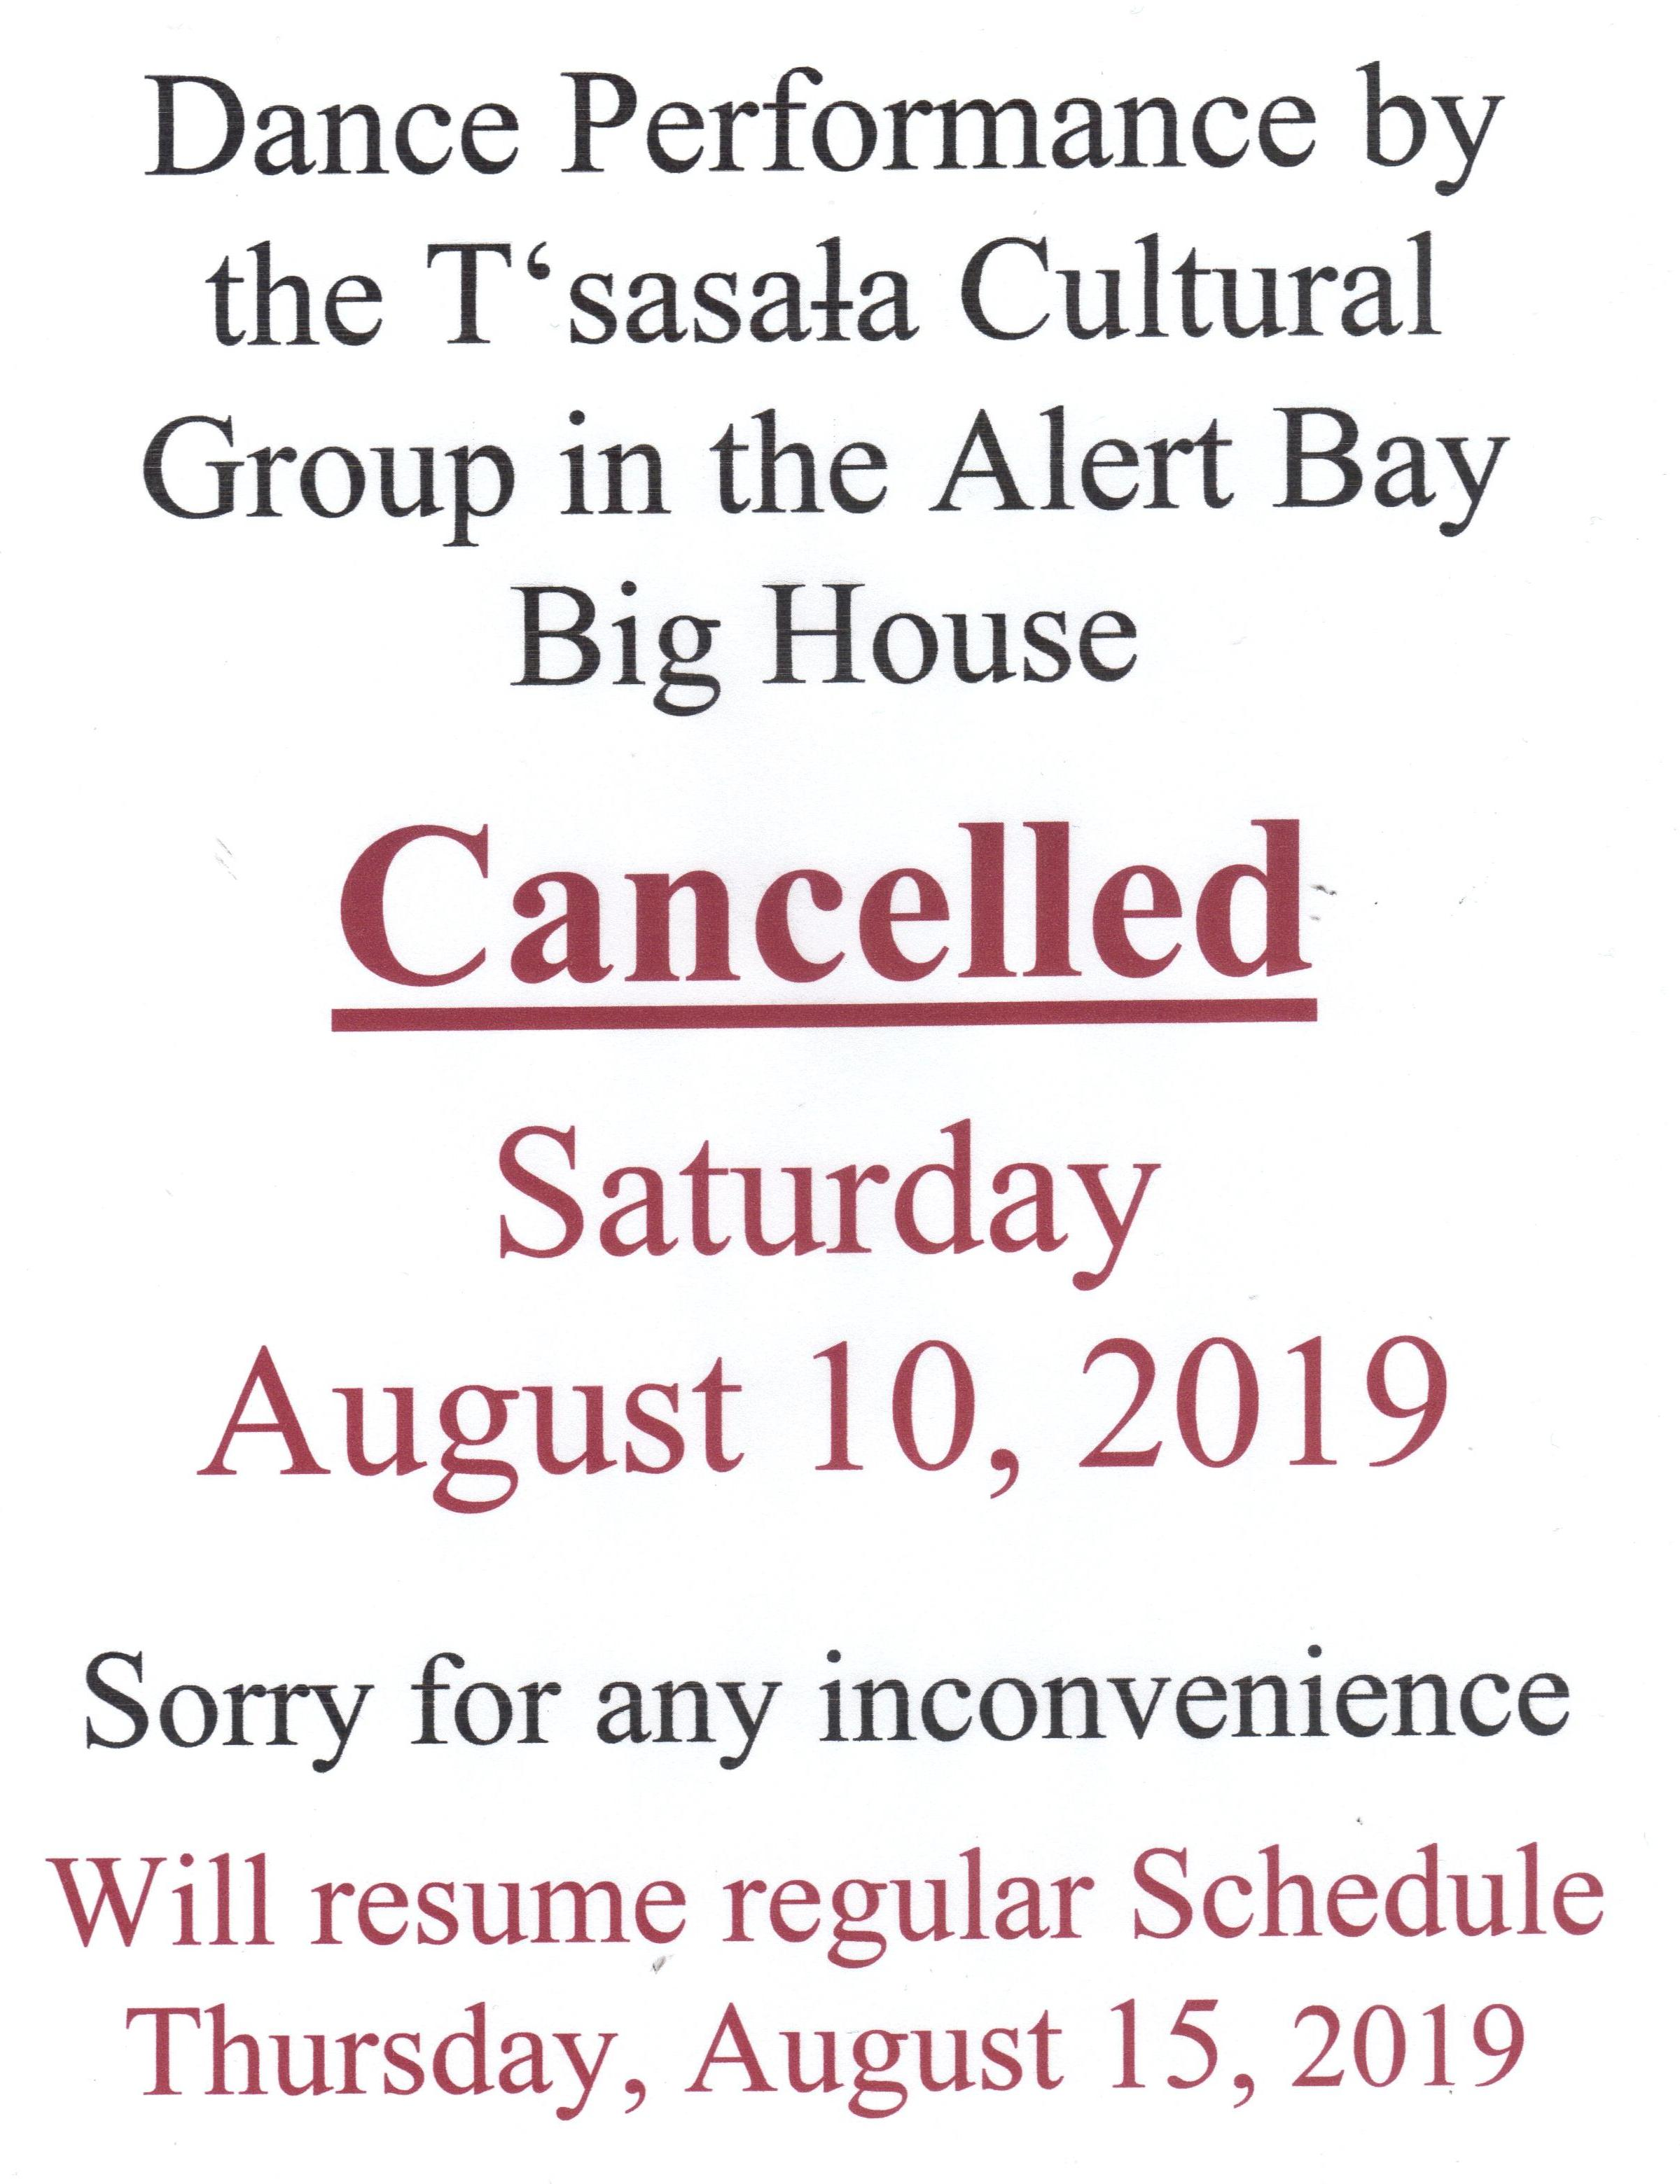 Dancing Cancelled August 10, 2019.jpg